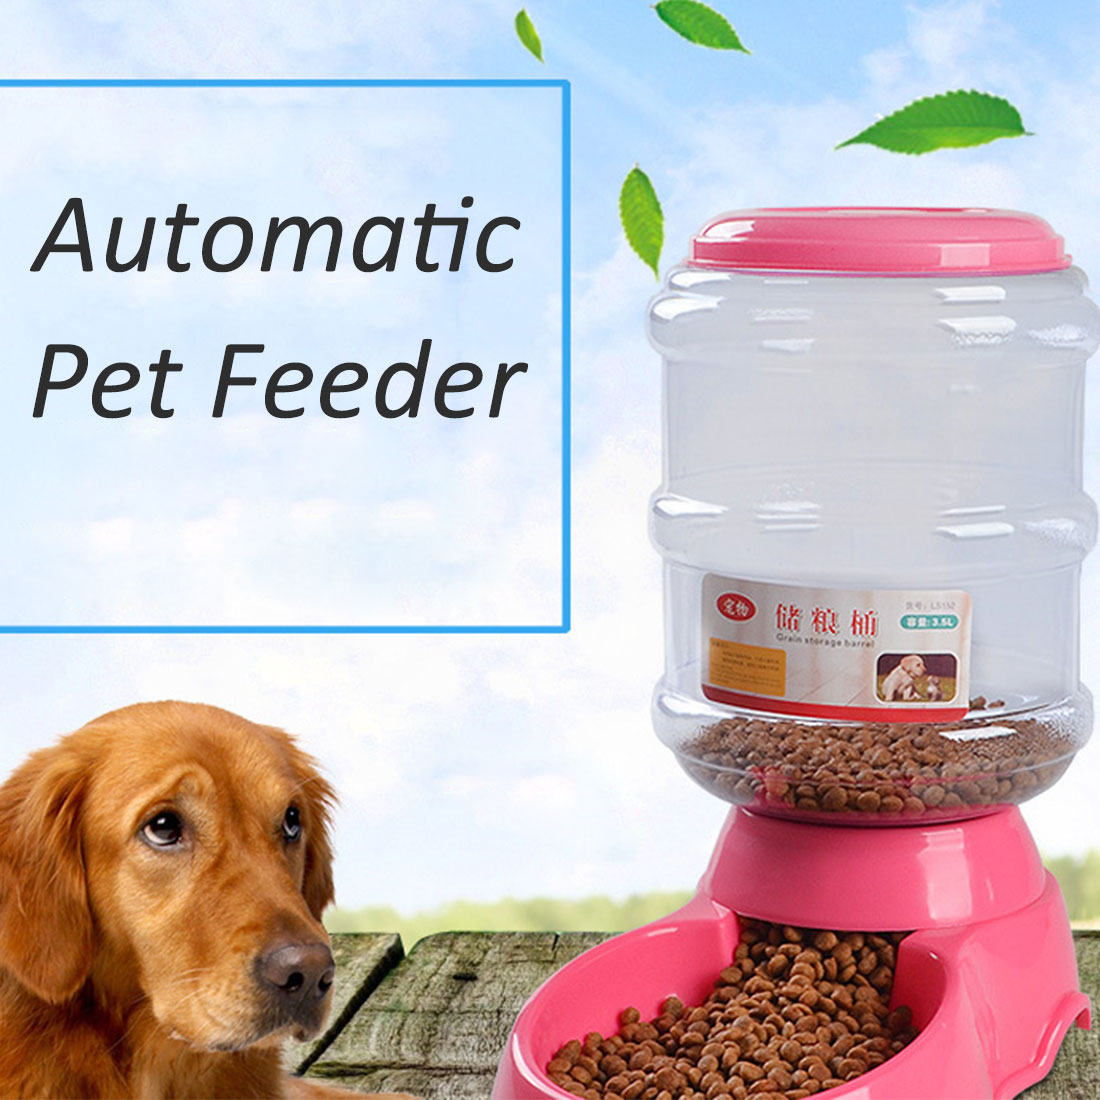 Water Rover Portable Pet Dog Drinking Bowl: Aliexpress.com : Buy Portable Pet Dog Water Drinkers Bowl